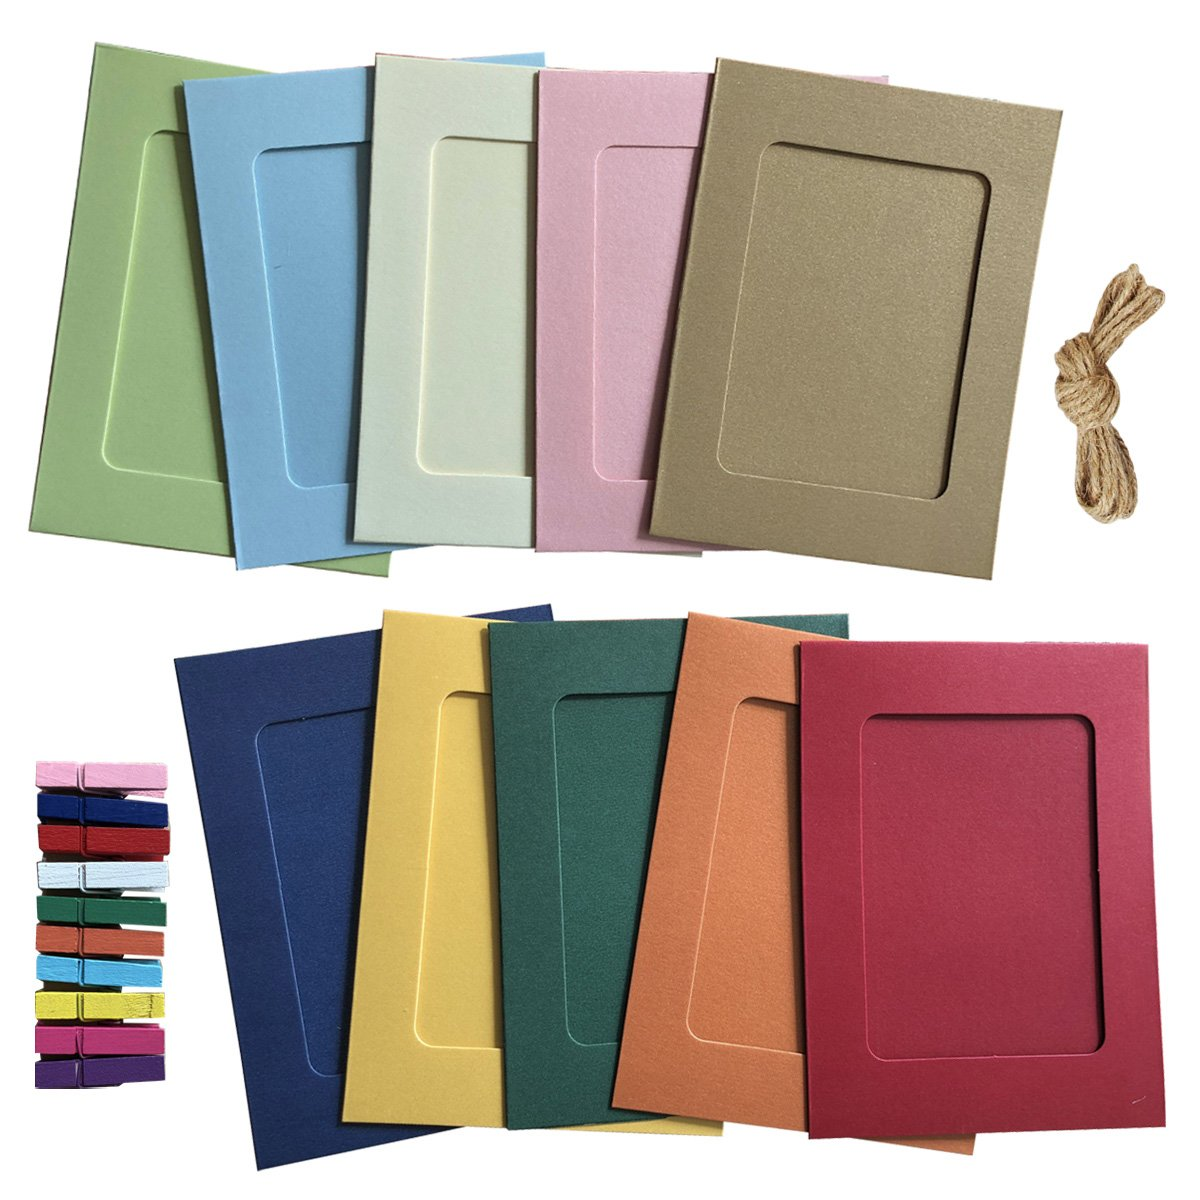 Paper Photo Frame 4x6 Kraft Paper Picture Frames 10 Pcs Diy Cardboard Photo Frames With Wood Clips And Jute Twine 10 Colors